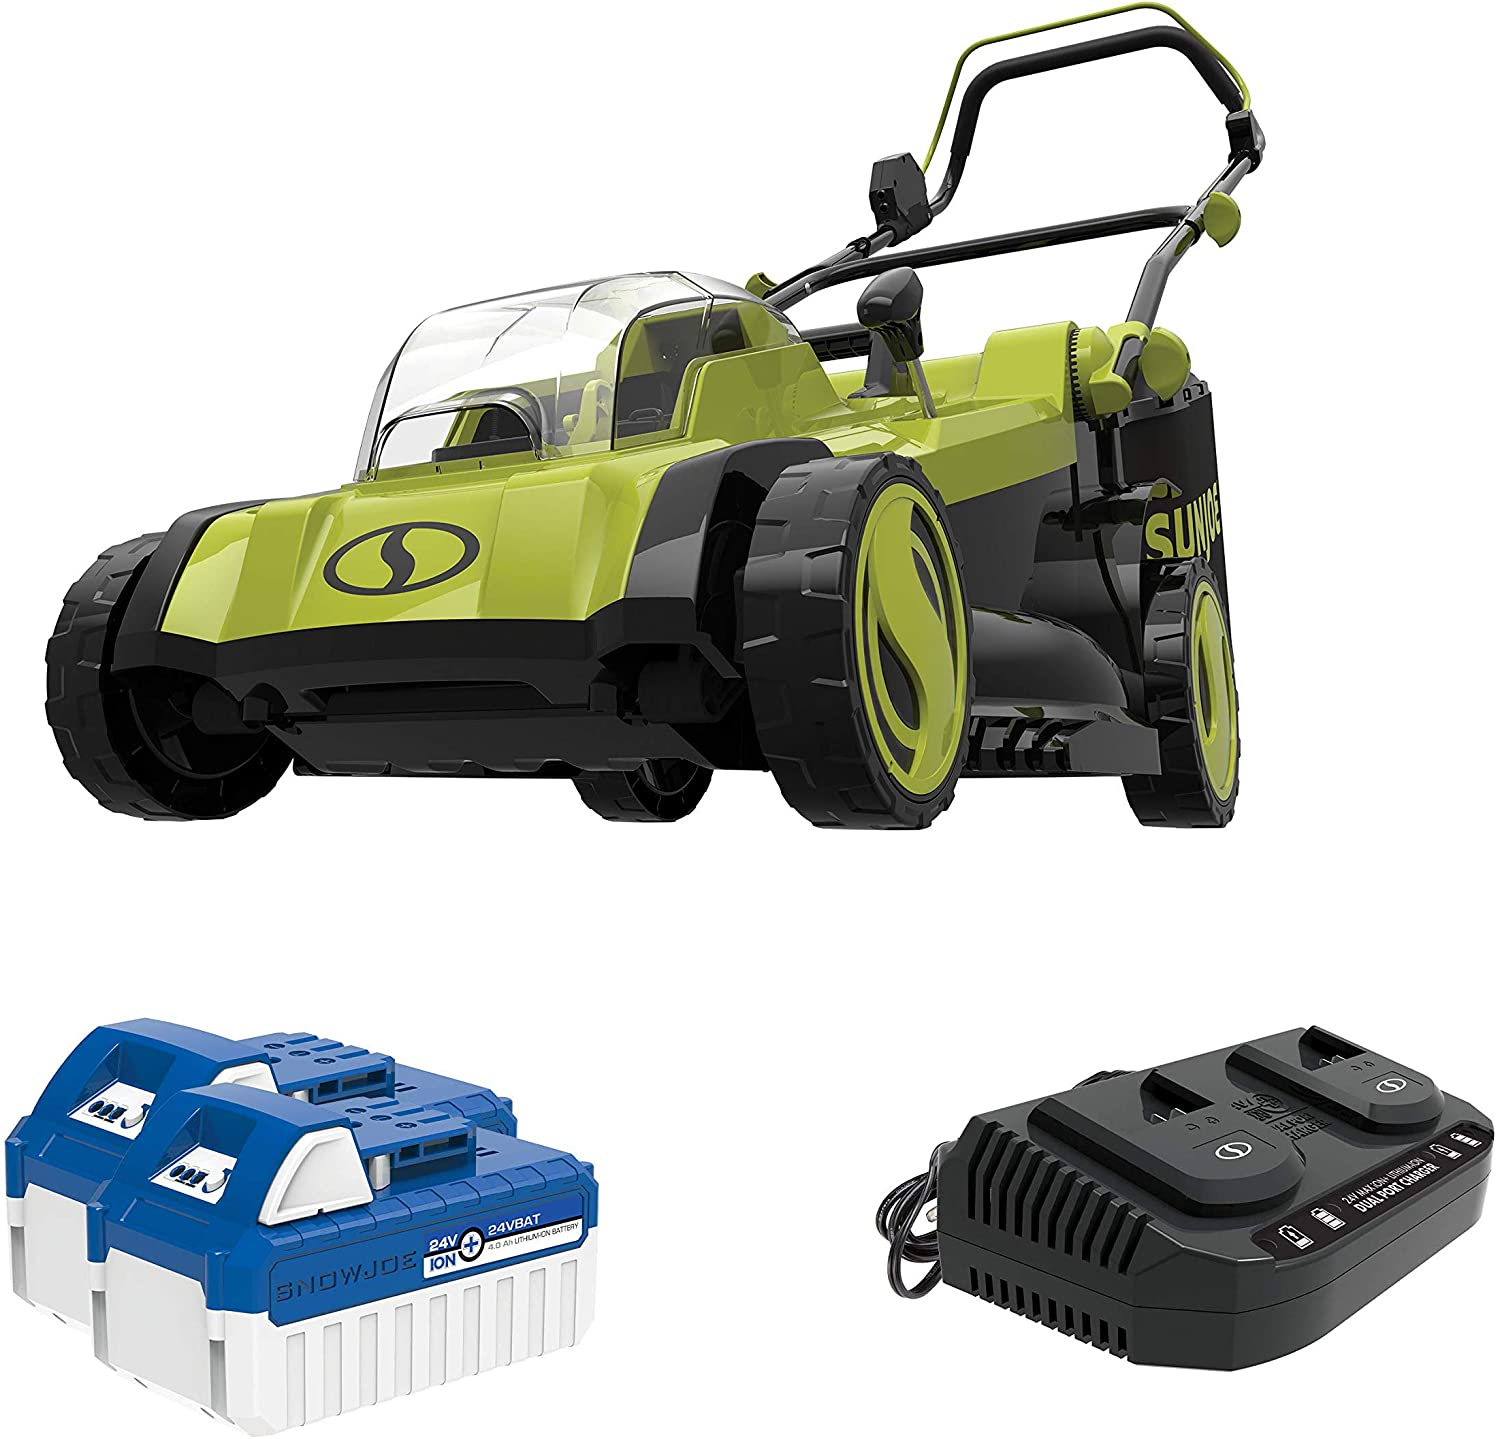 Sun Joe 24V-X2 Lawn Mower